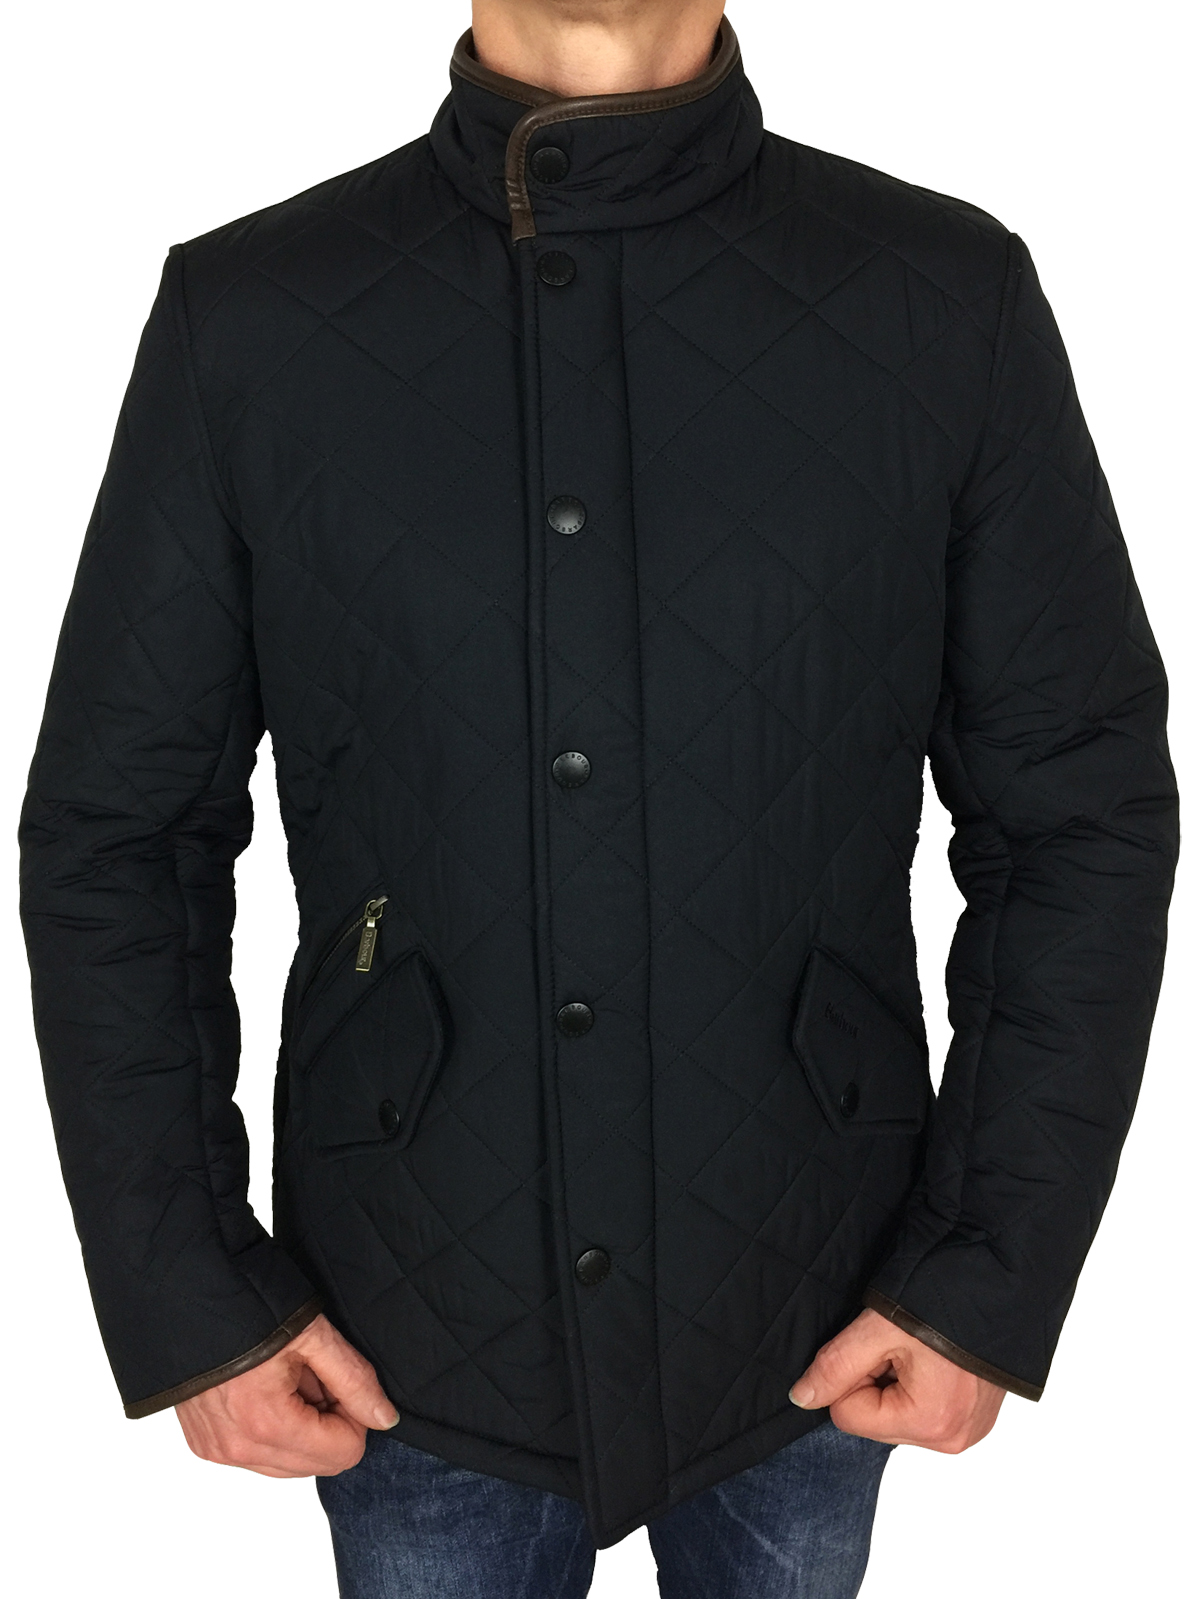 Quilted jacket mens fashion 87